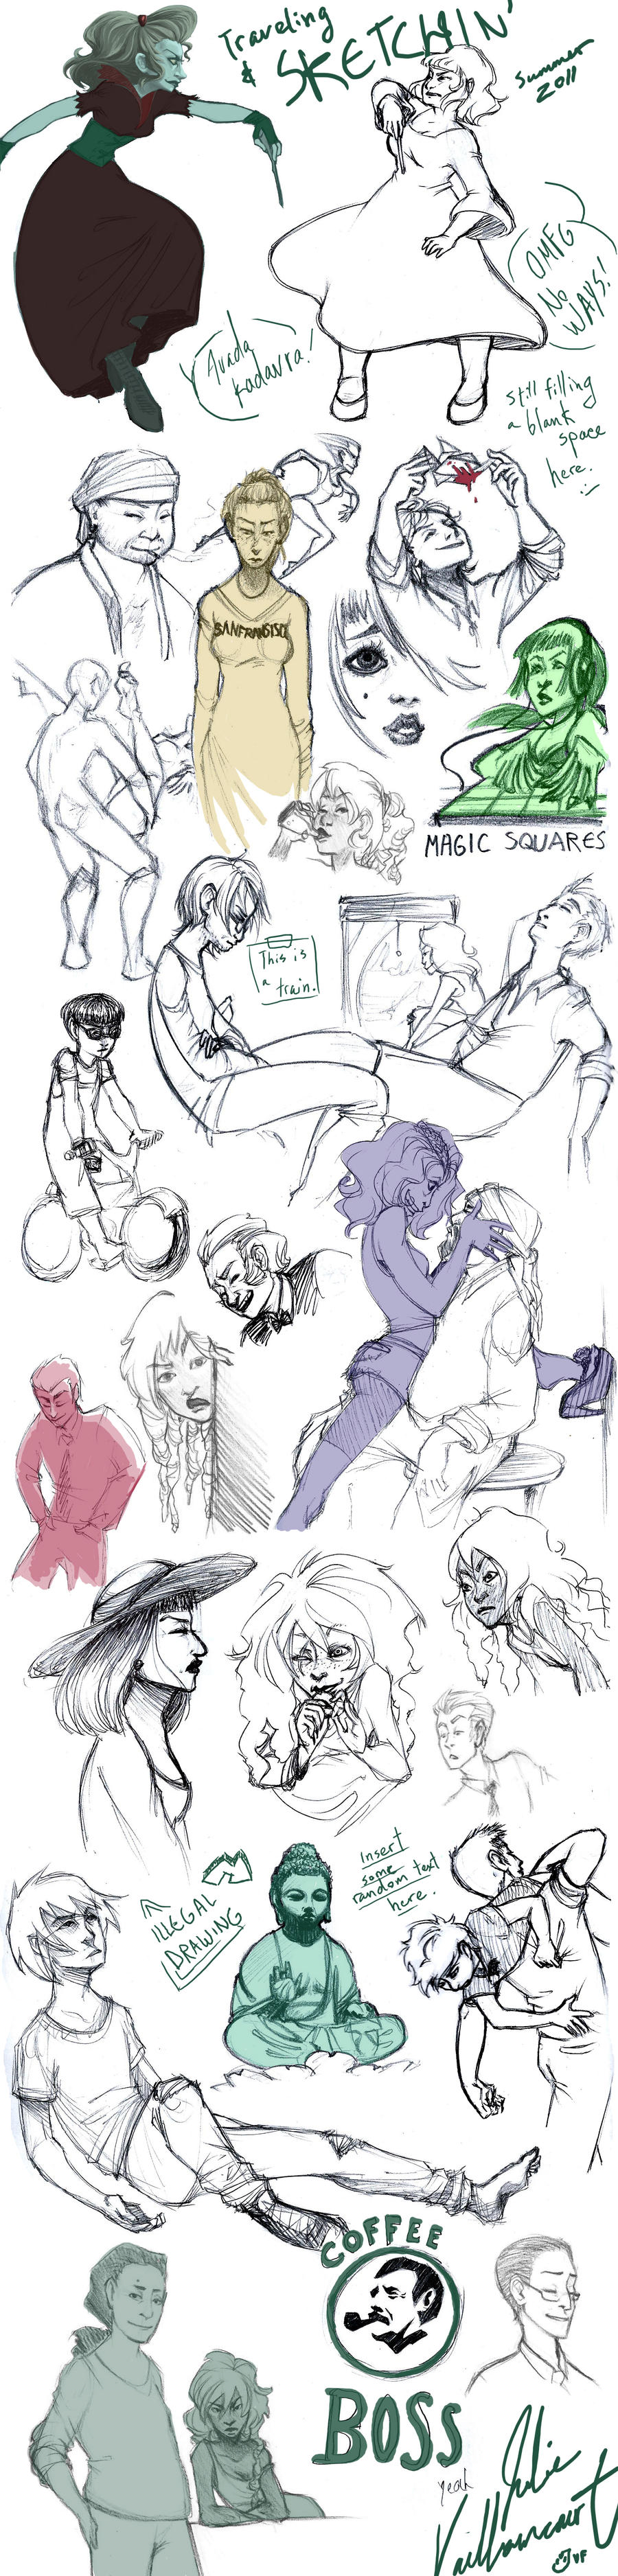 Sketchdump from Japan by TastingCockroaches